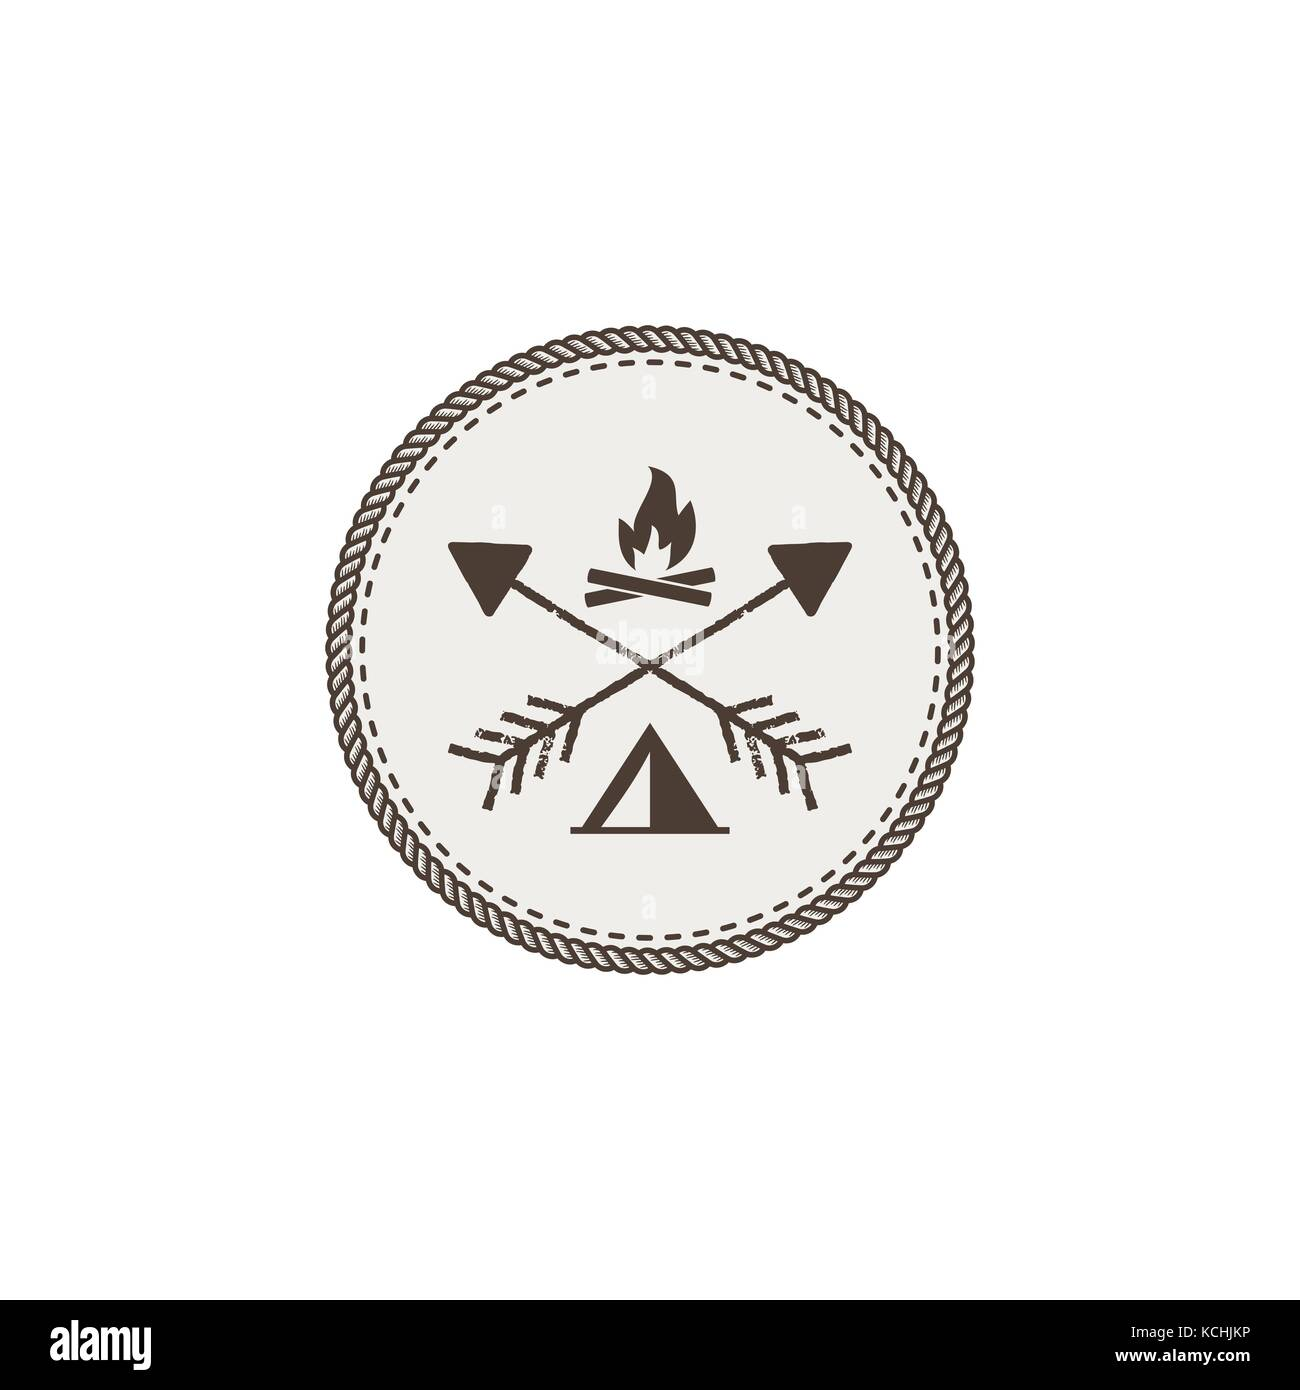 Outdoor activity patch. Adventure icon with bonfire and tent. Stock vector illustration isolated on white background  sc 1 st  Alamy : patch tent - memphite.com